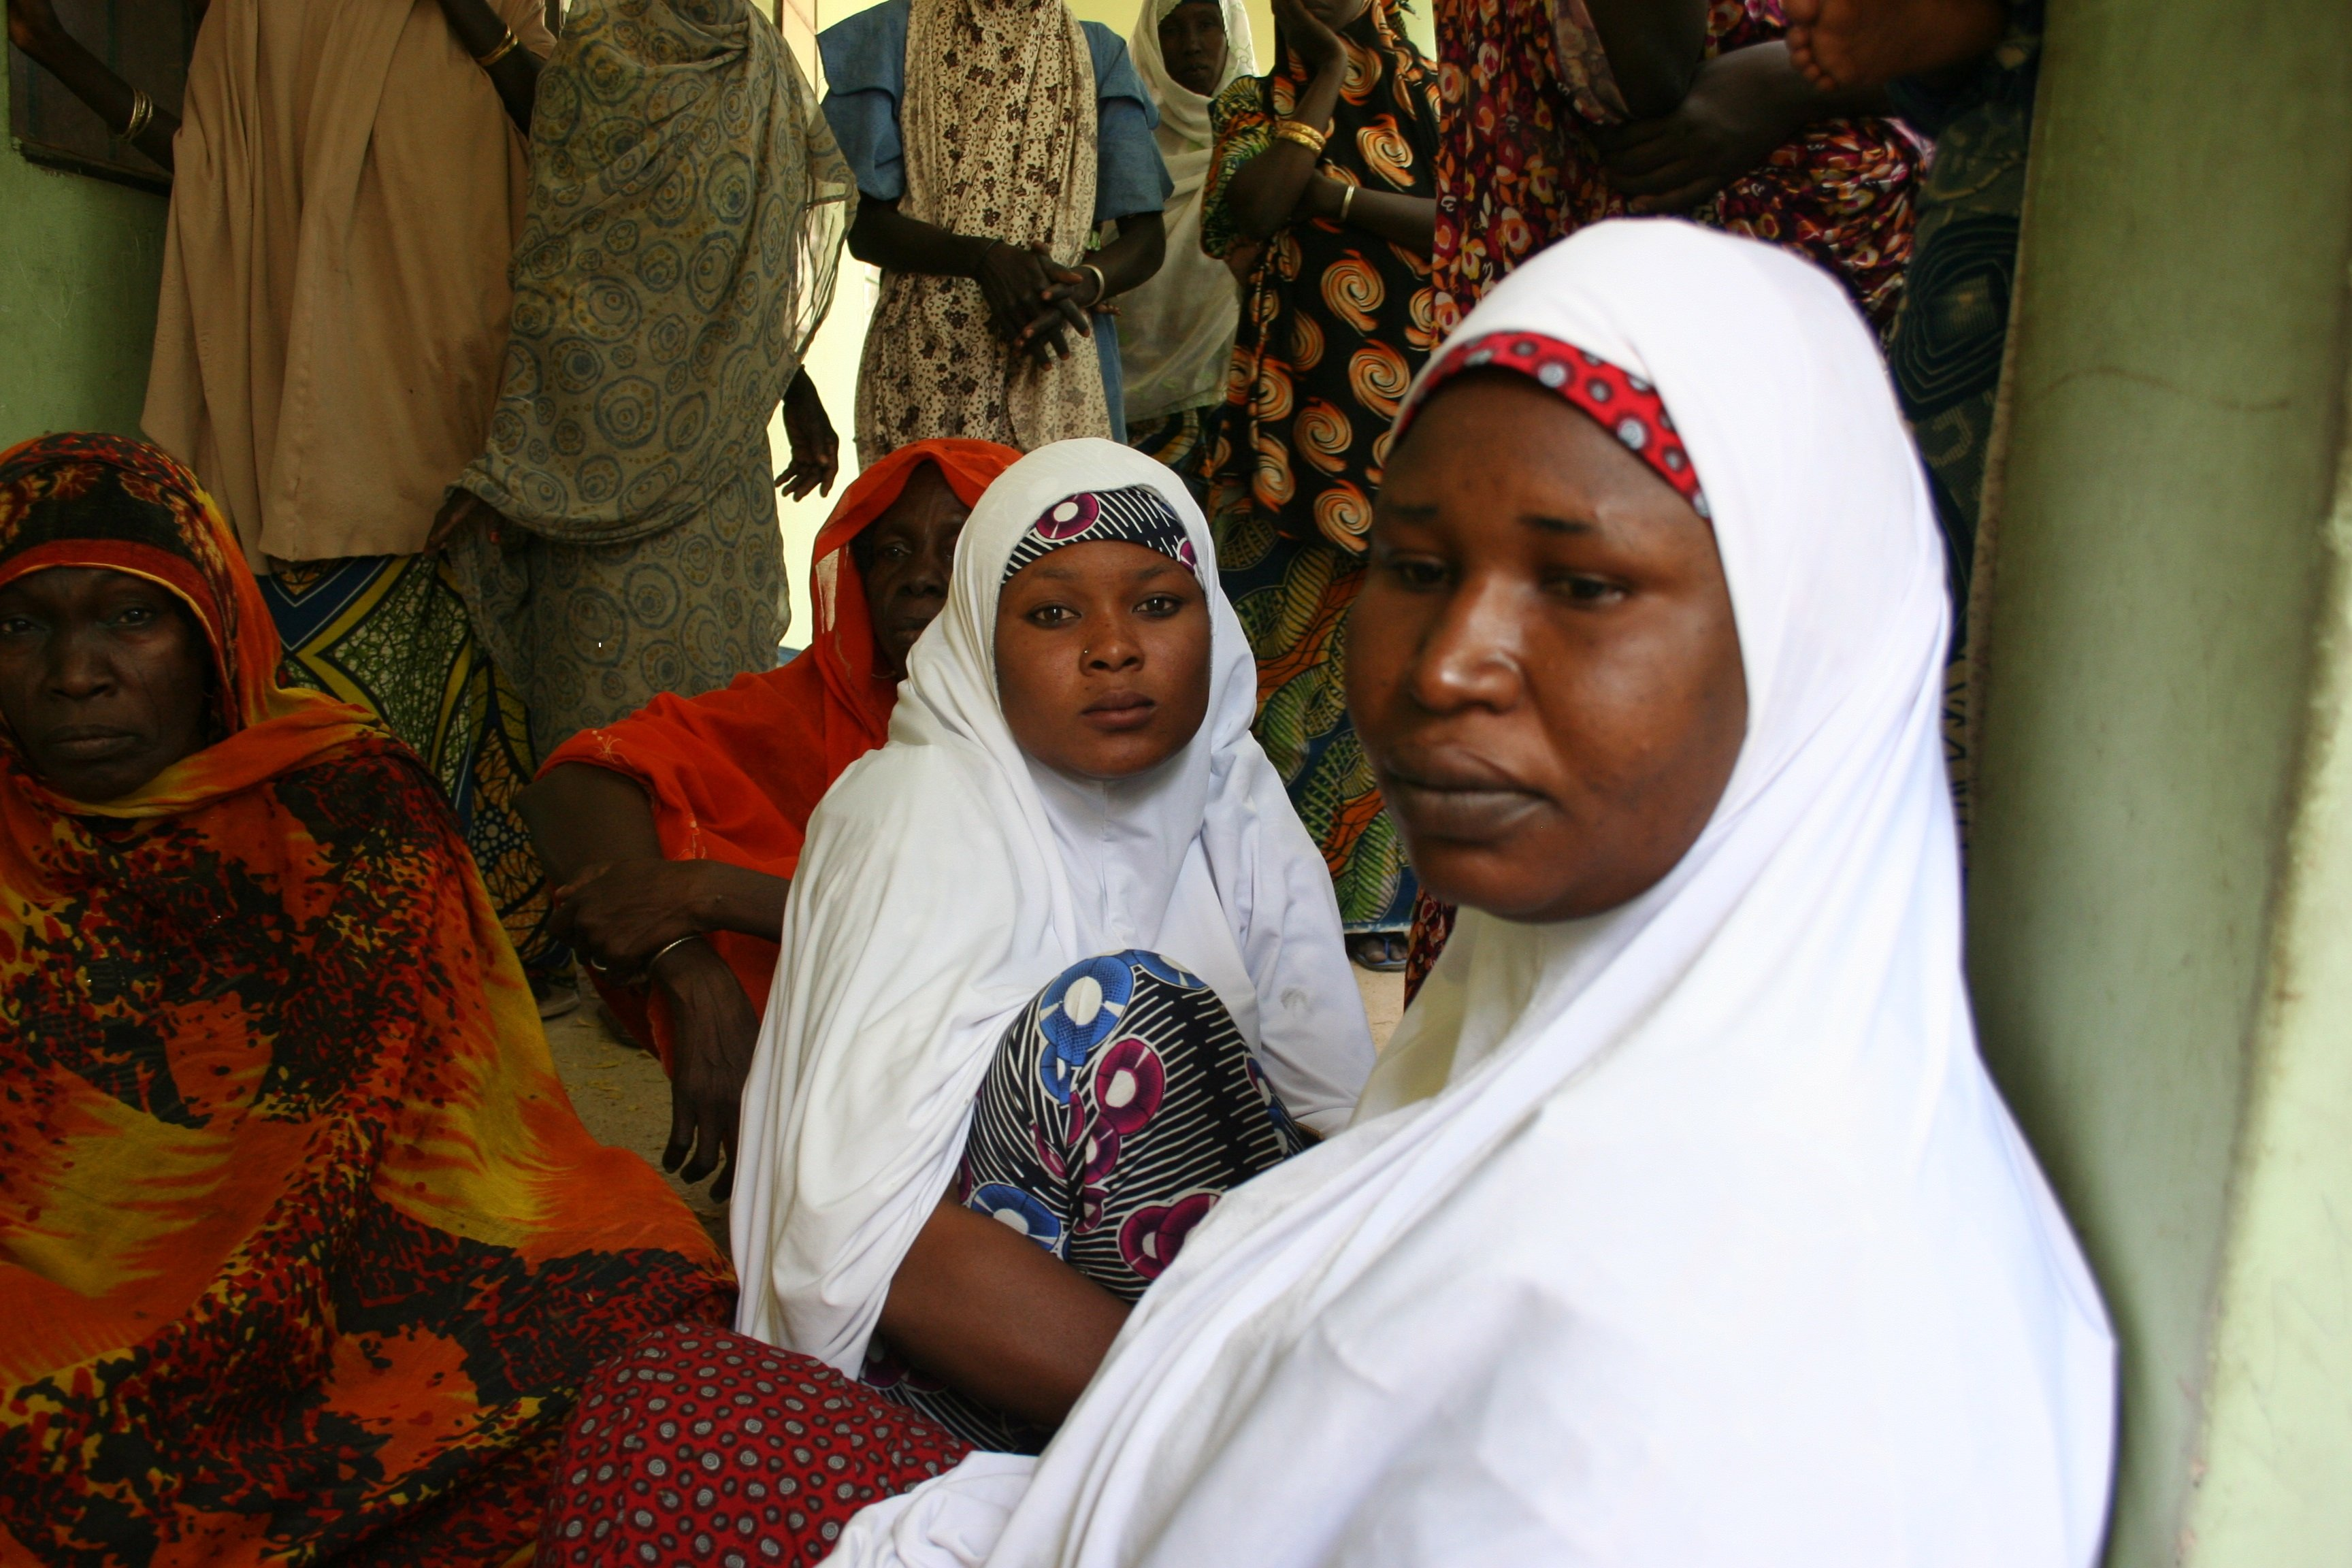 IDPs in Maiduguri, Nigeria, February 2015